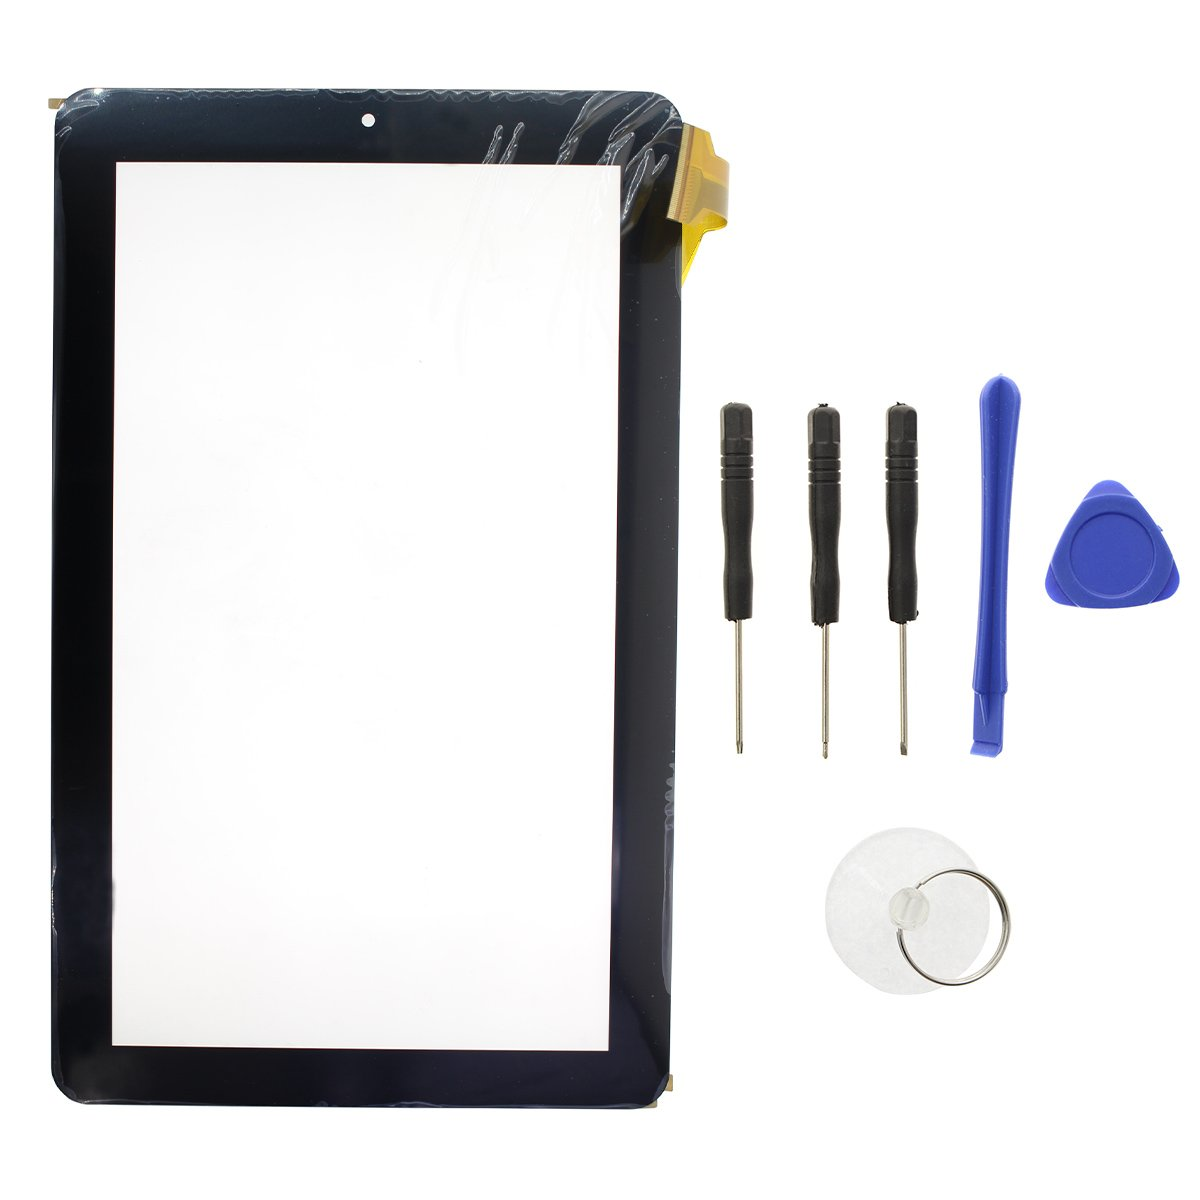 AUTOKAY Digitizer Touch Screen & Tools for RCA 11 Galileo Pro RCT6513W87DK 11.5'' Tablet by AUTOKAY